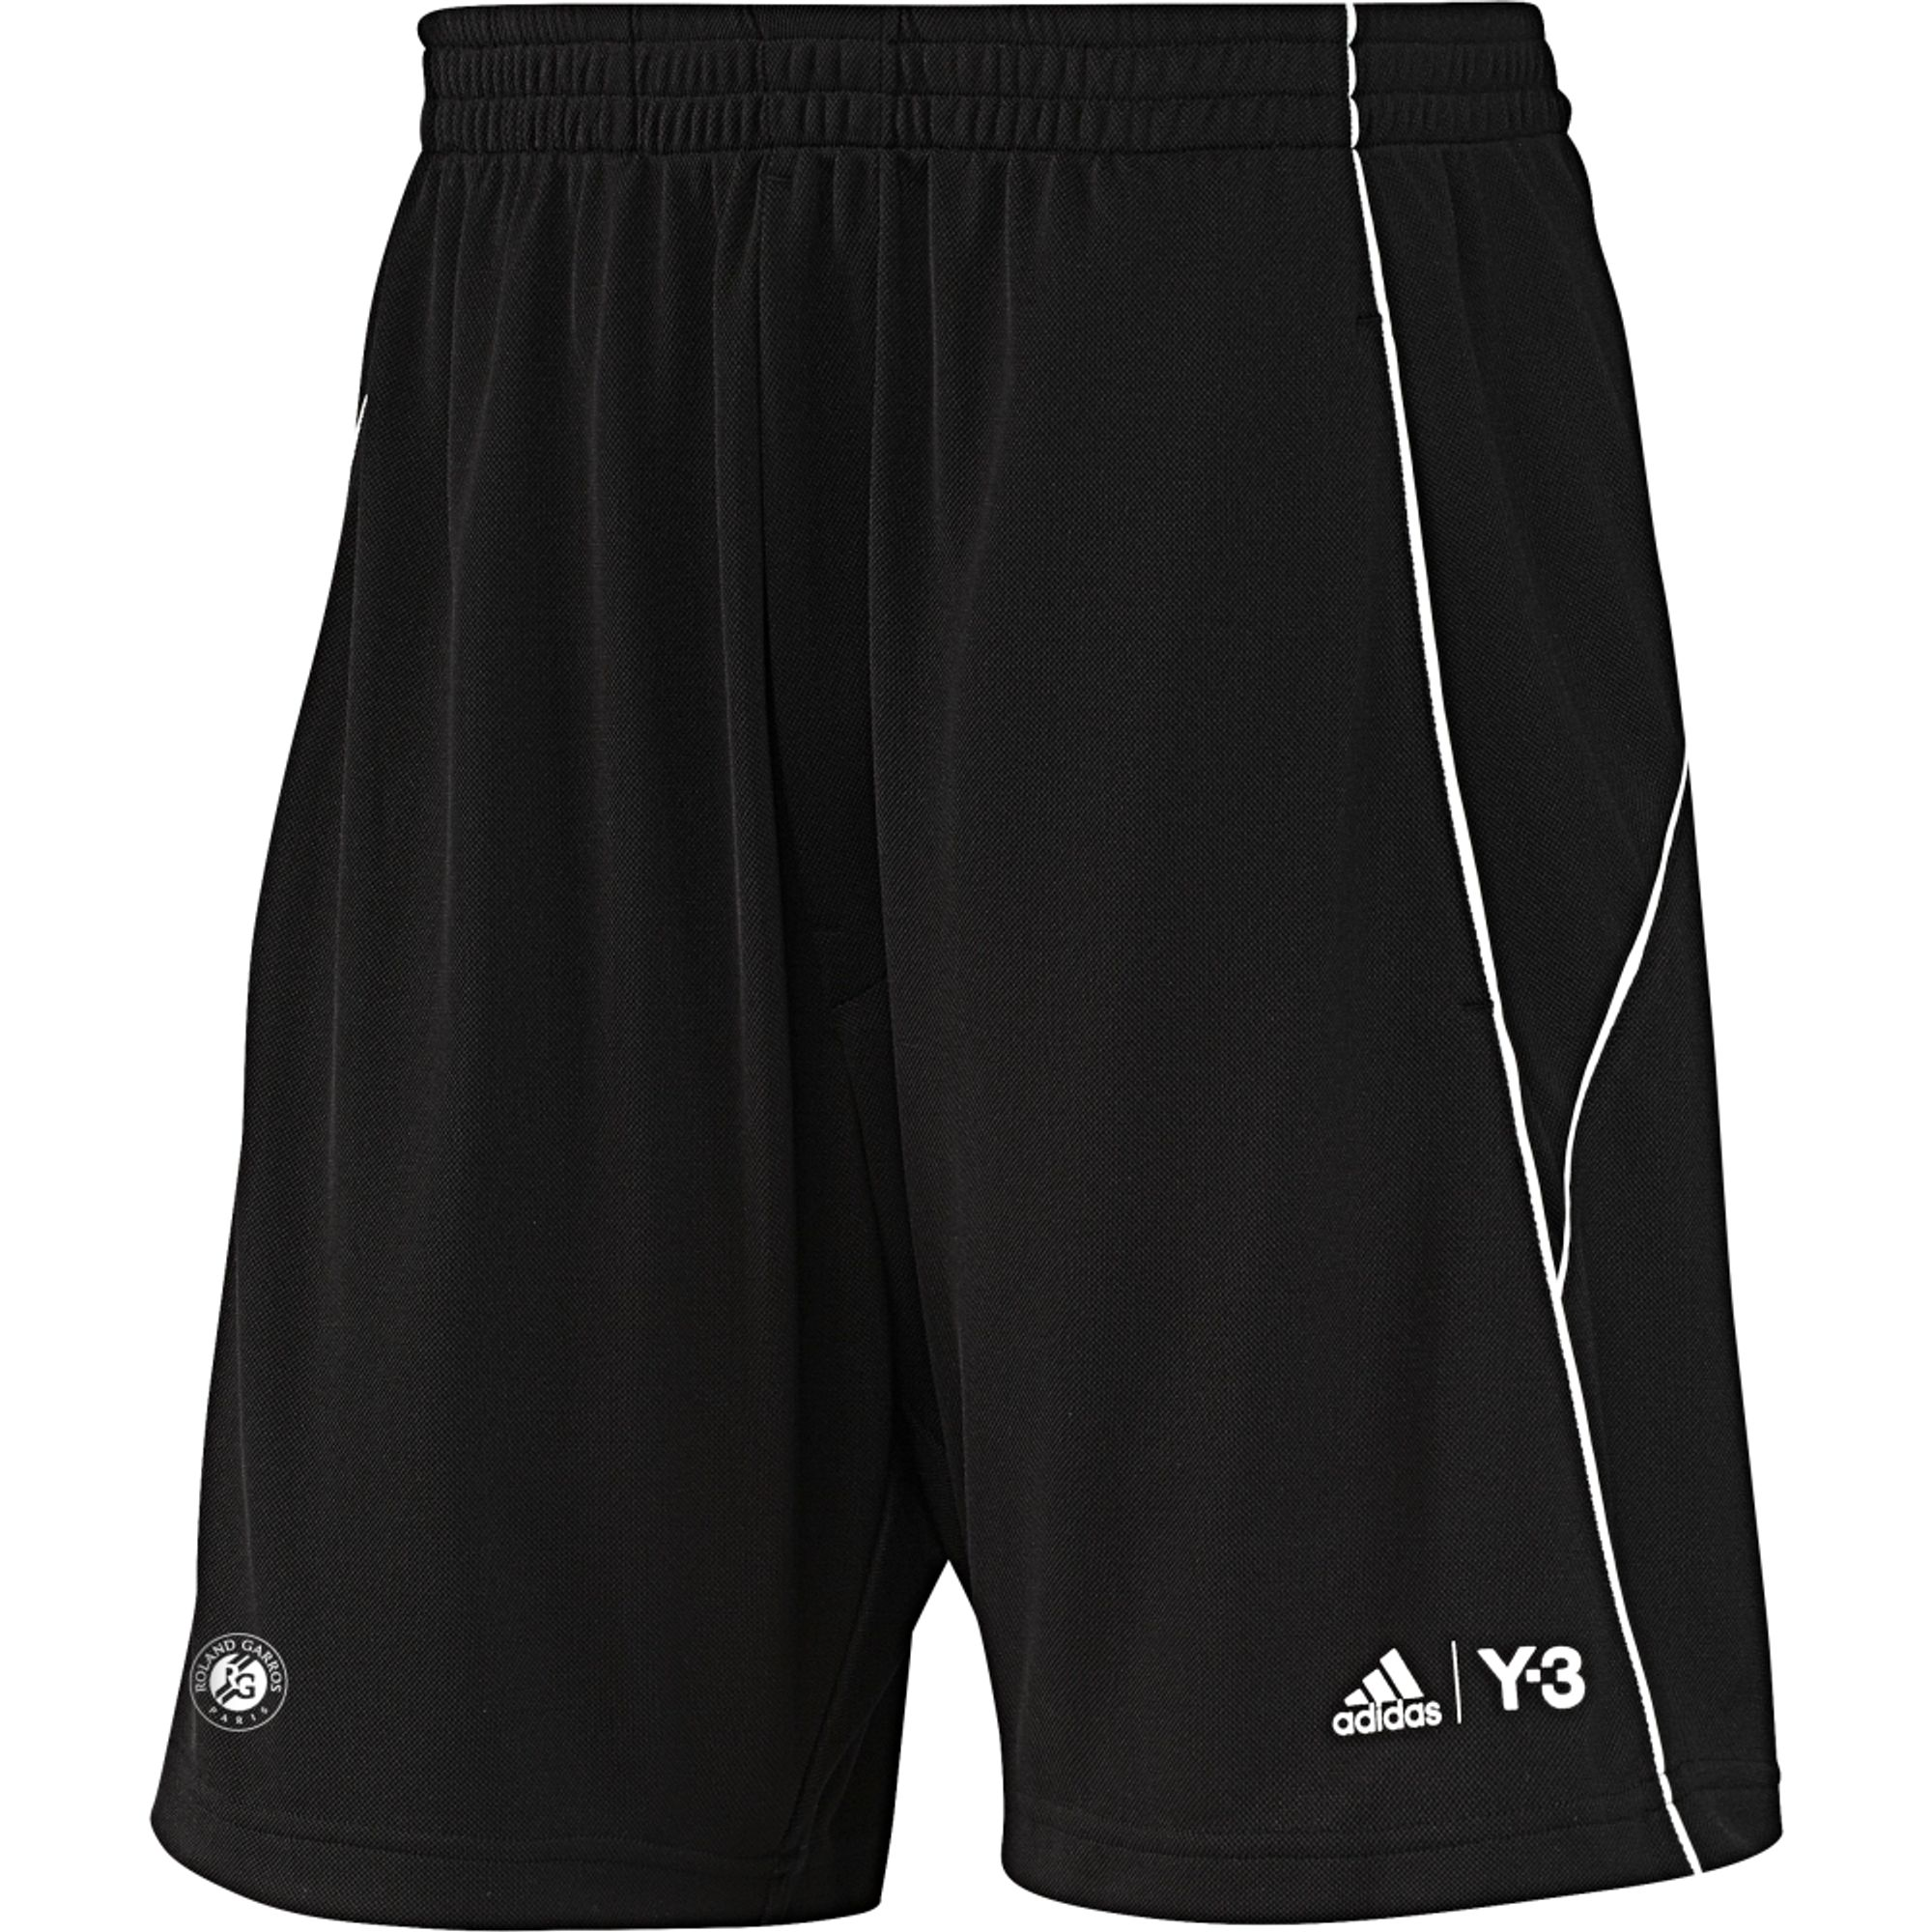 adidas Rgy3 bb short black/black